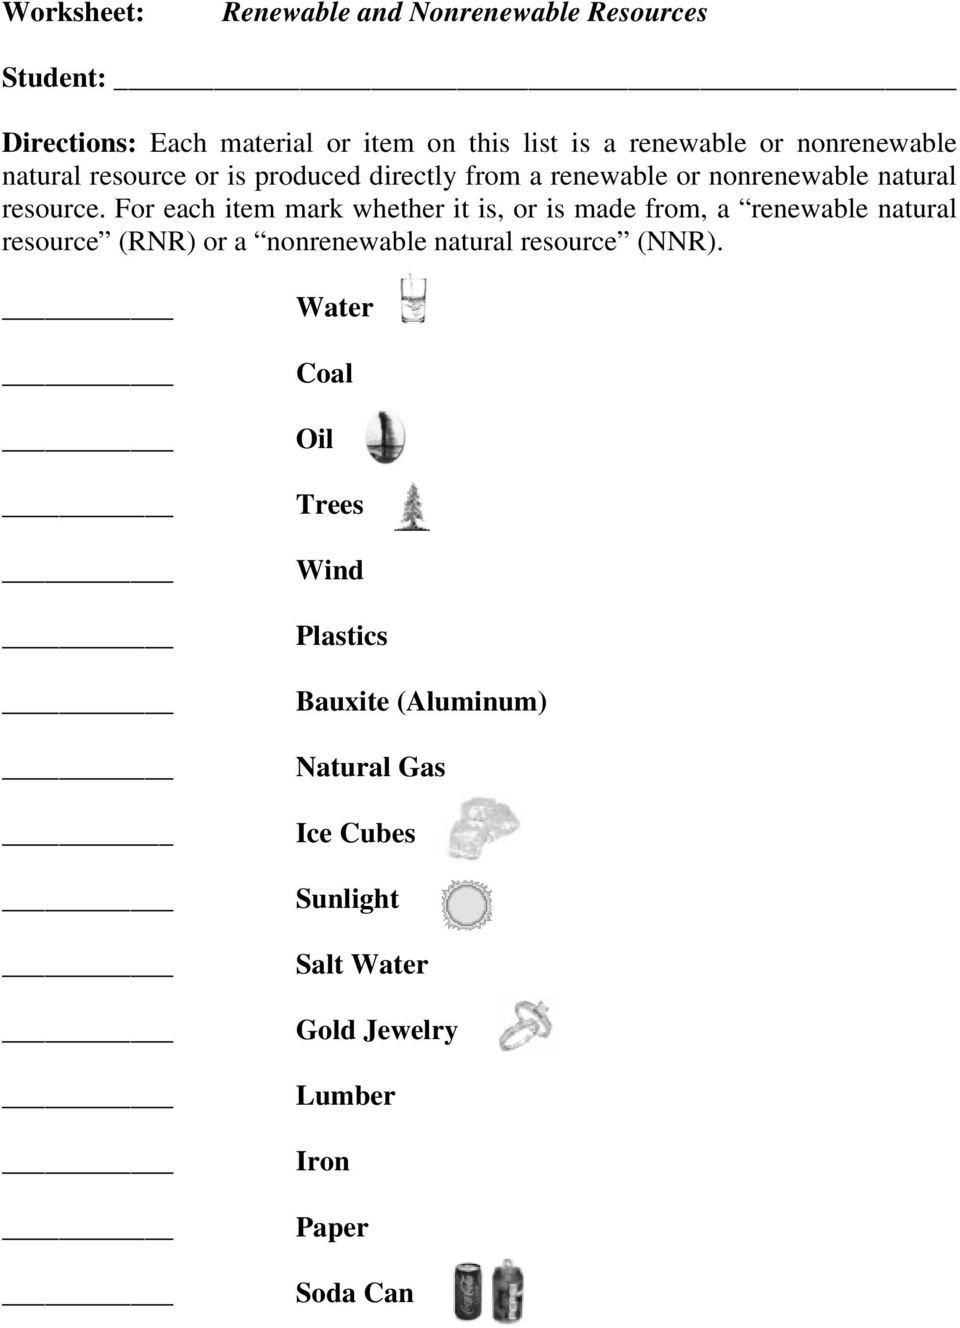 Natural Resources Worksheets Pdf Renewable and Nonrenewable Resources Pdf Free Download